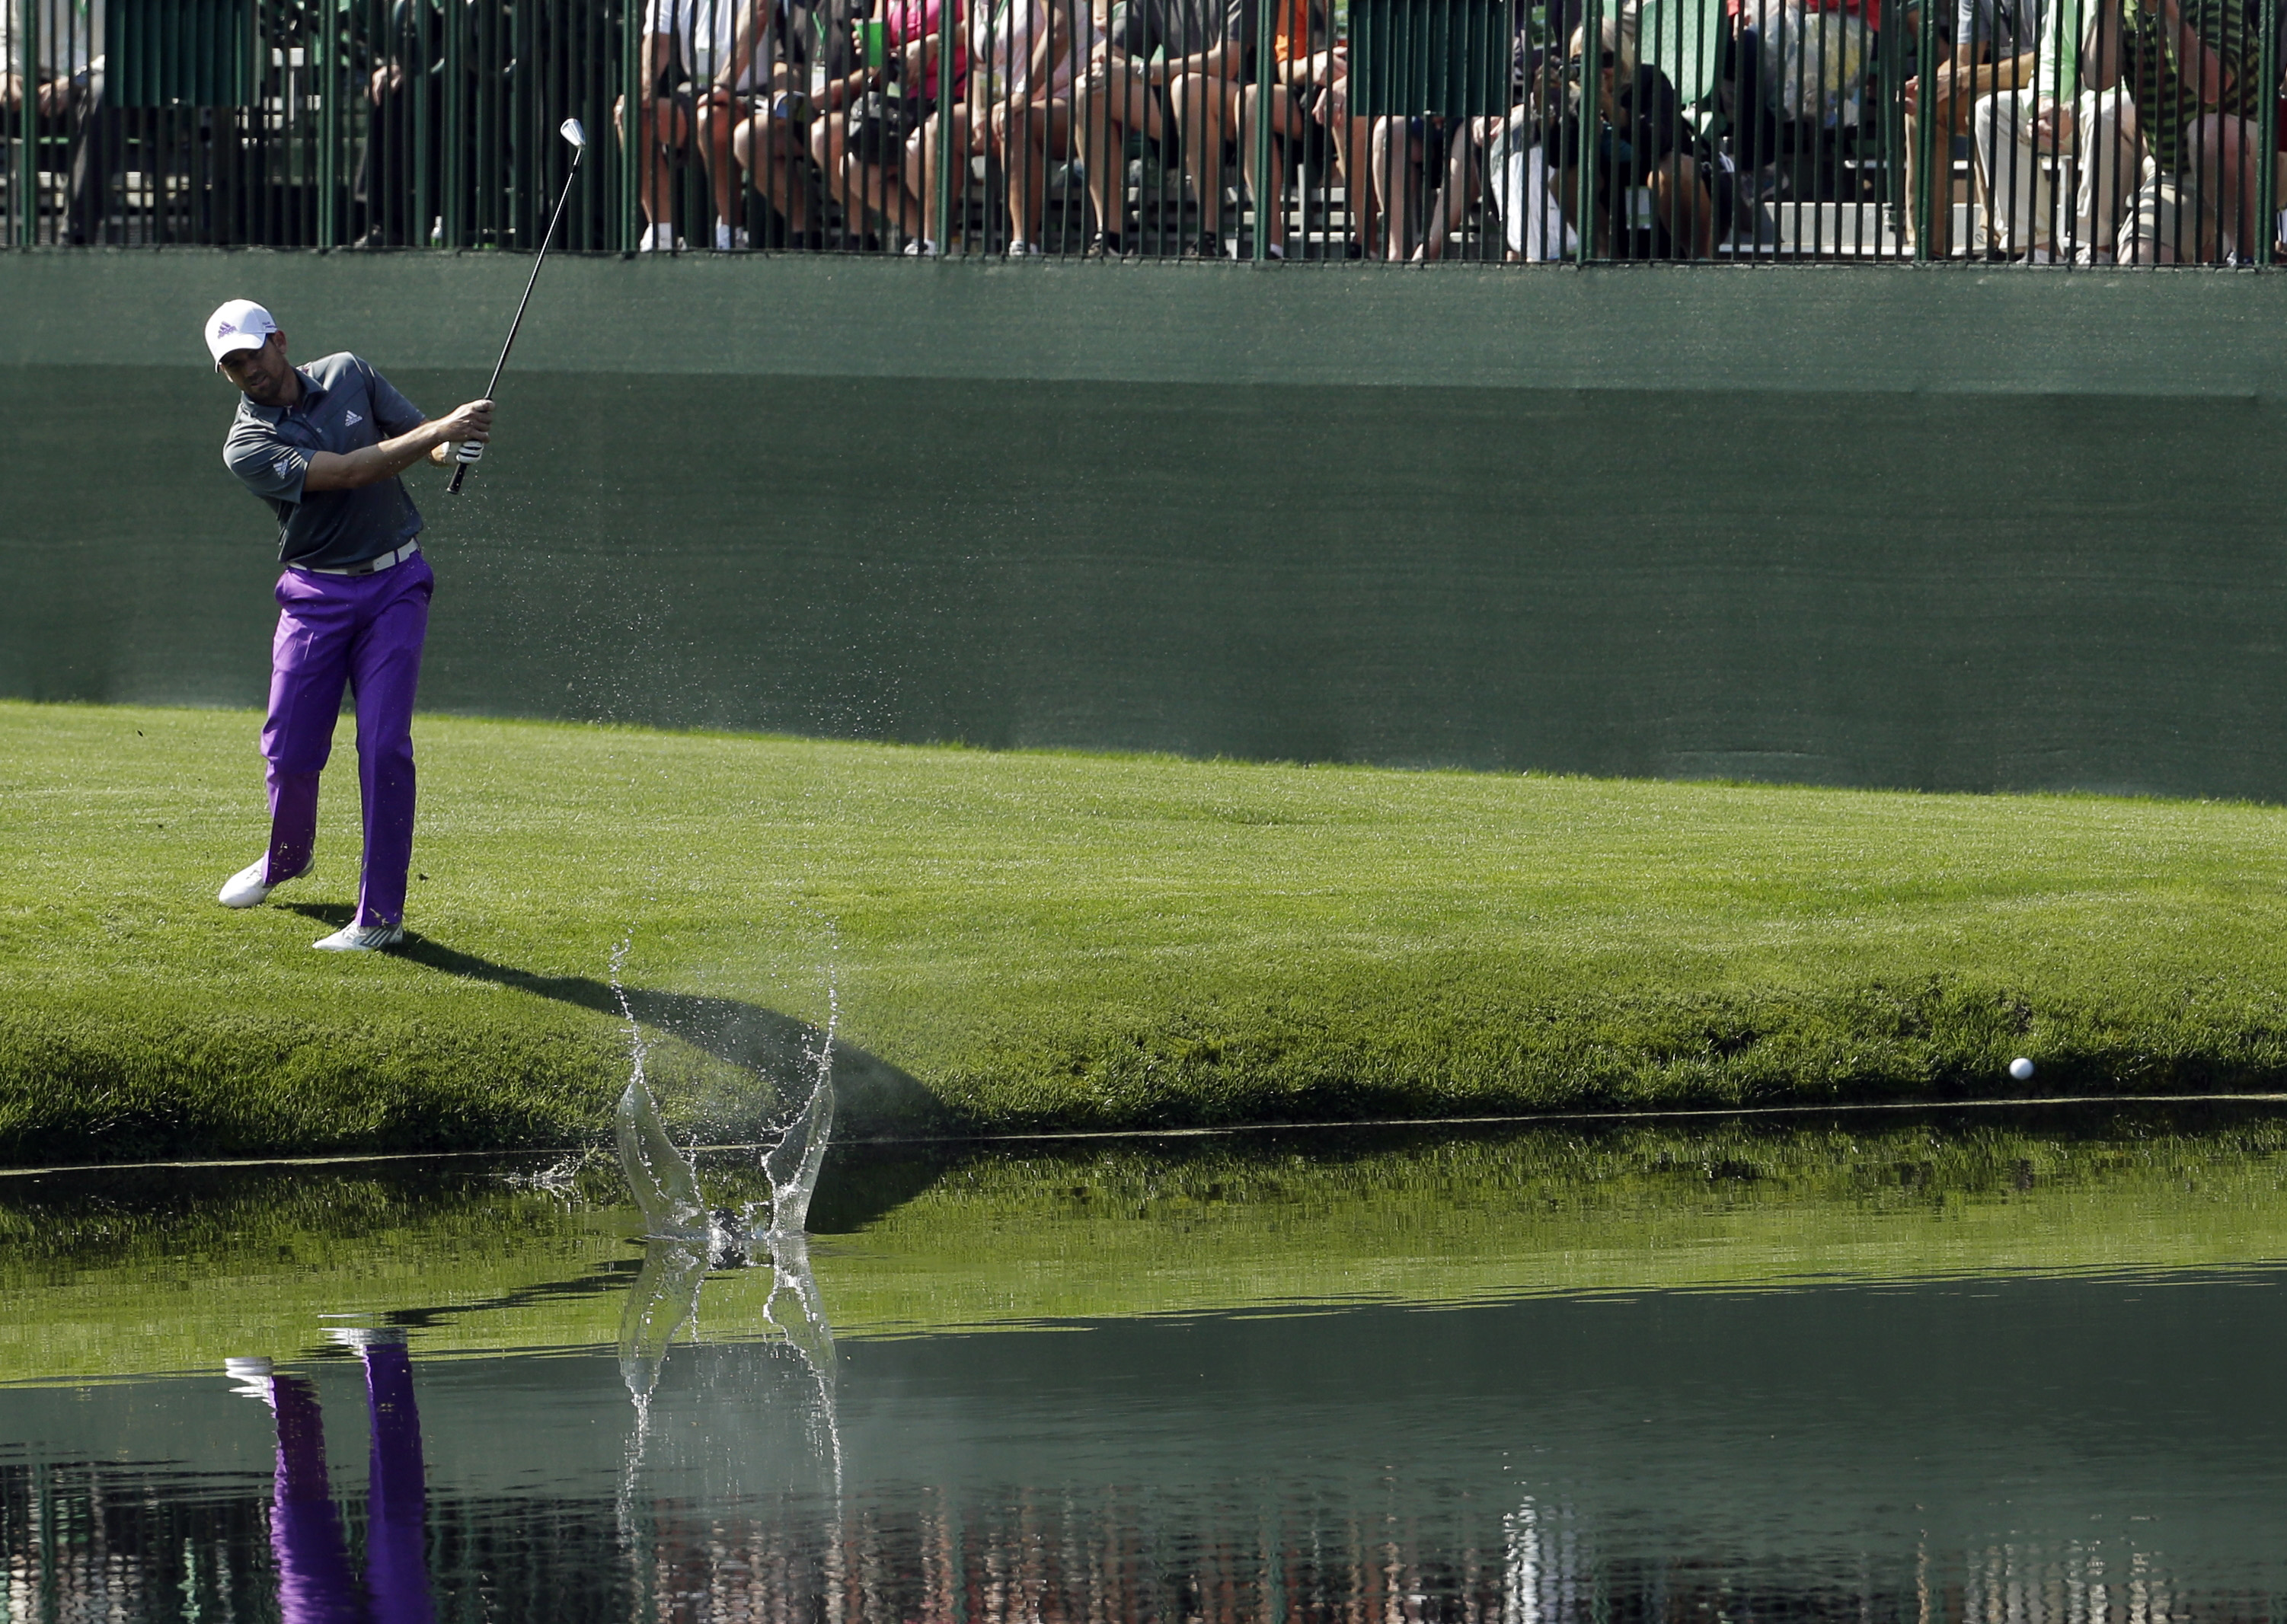 FILE - In this April 9, 2014, file photo, Sergio Garcia, of Spain, skips a ball across the water on the 16th hole during a practice round for the Masters golf tournament in Augusta, Ga. For many, the 16th hole is the place to be before the first major of